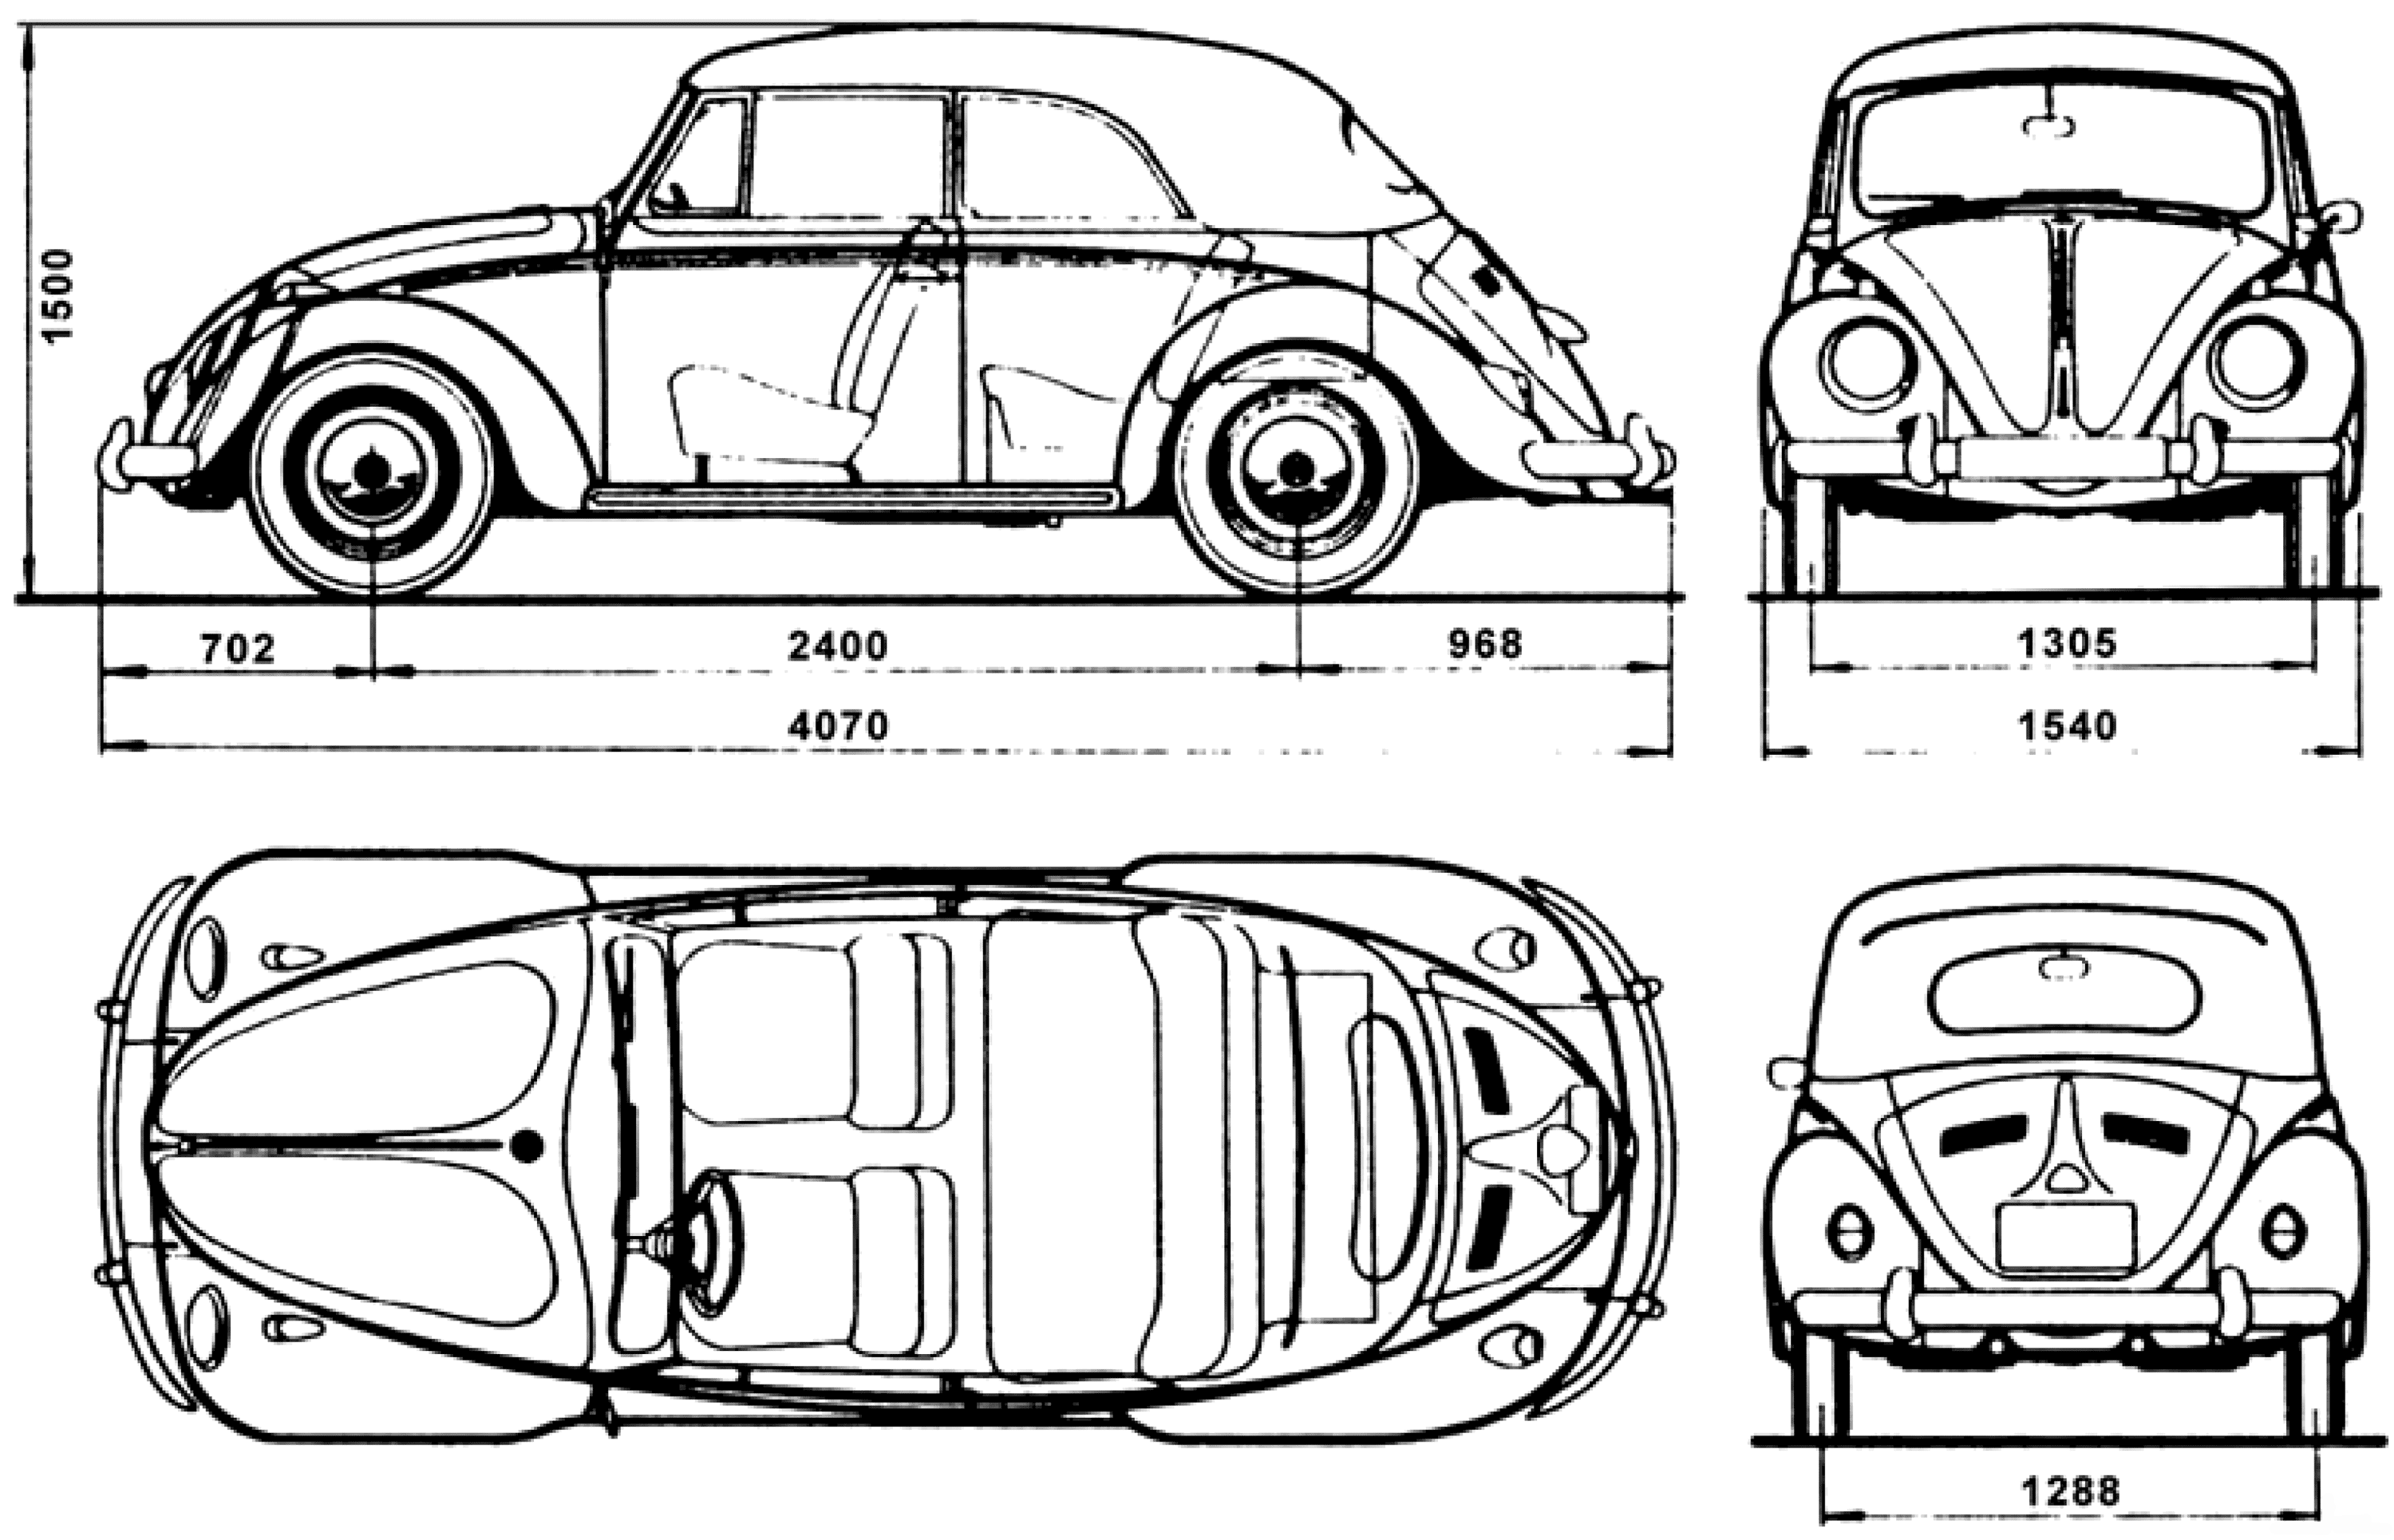 Dorable Blue Print Of Car Image - Everything You Need to Know About ...